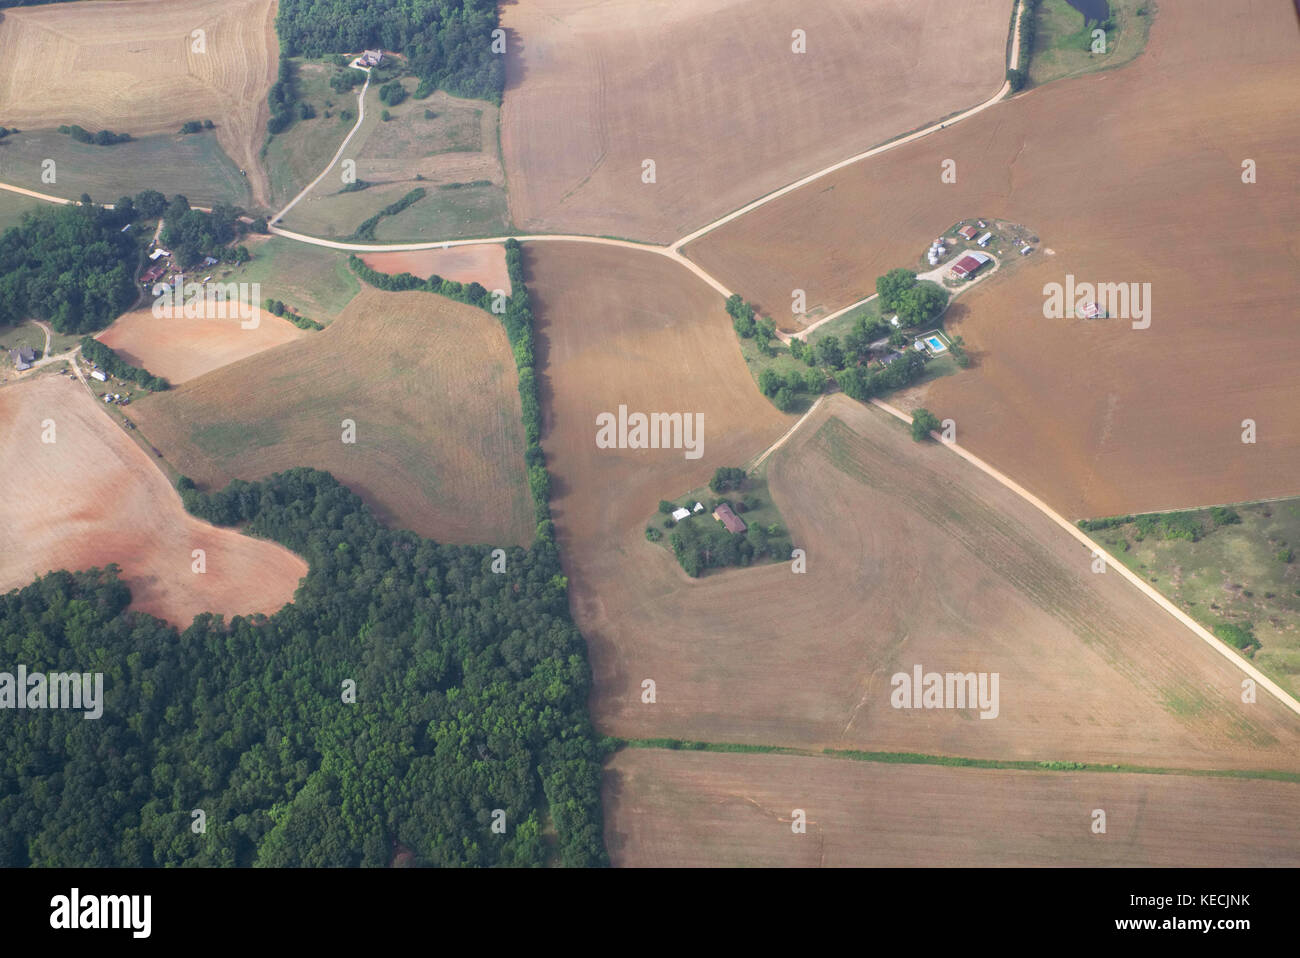 Farmland from the air, south of Atlanta Georgia USA - Stock Image